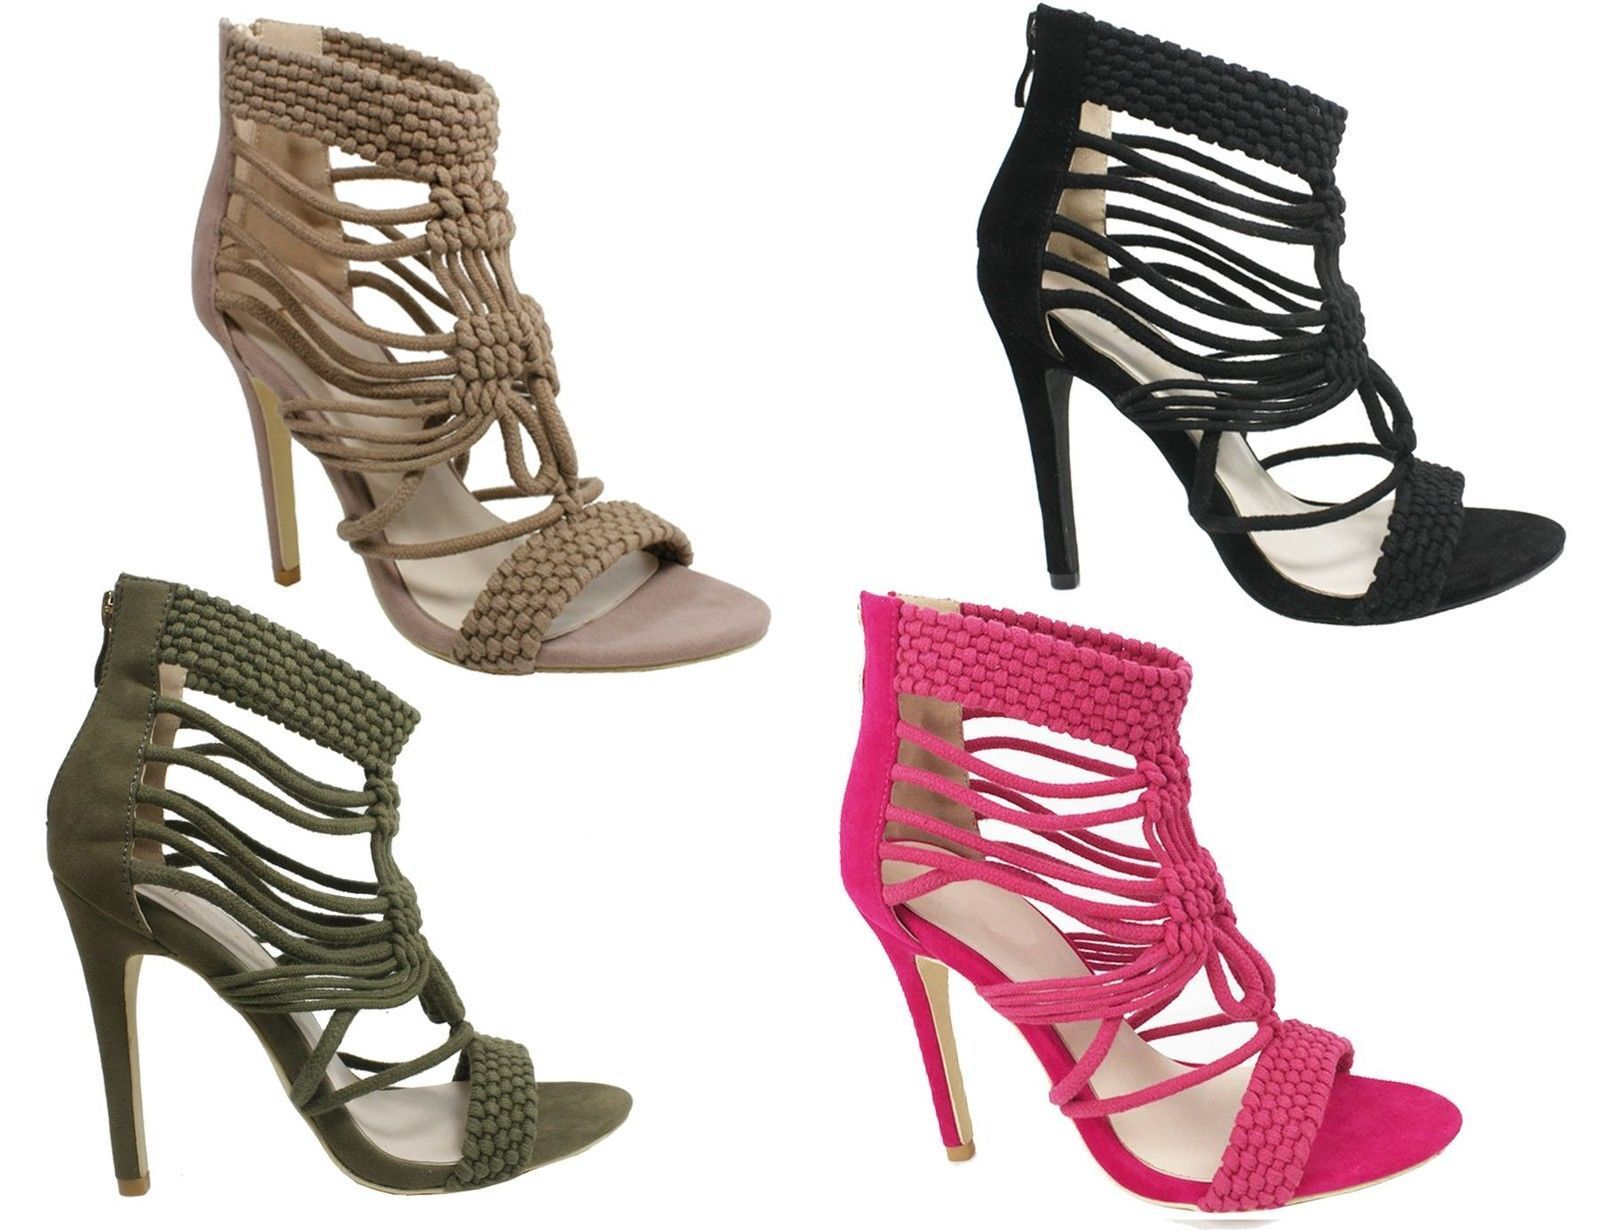 S318 Ladies Caged Woven Strappy Ankle Heeled Sandal shoes